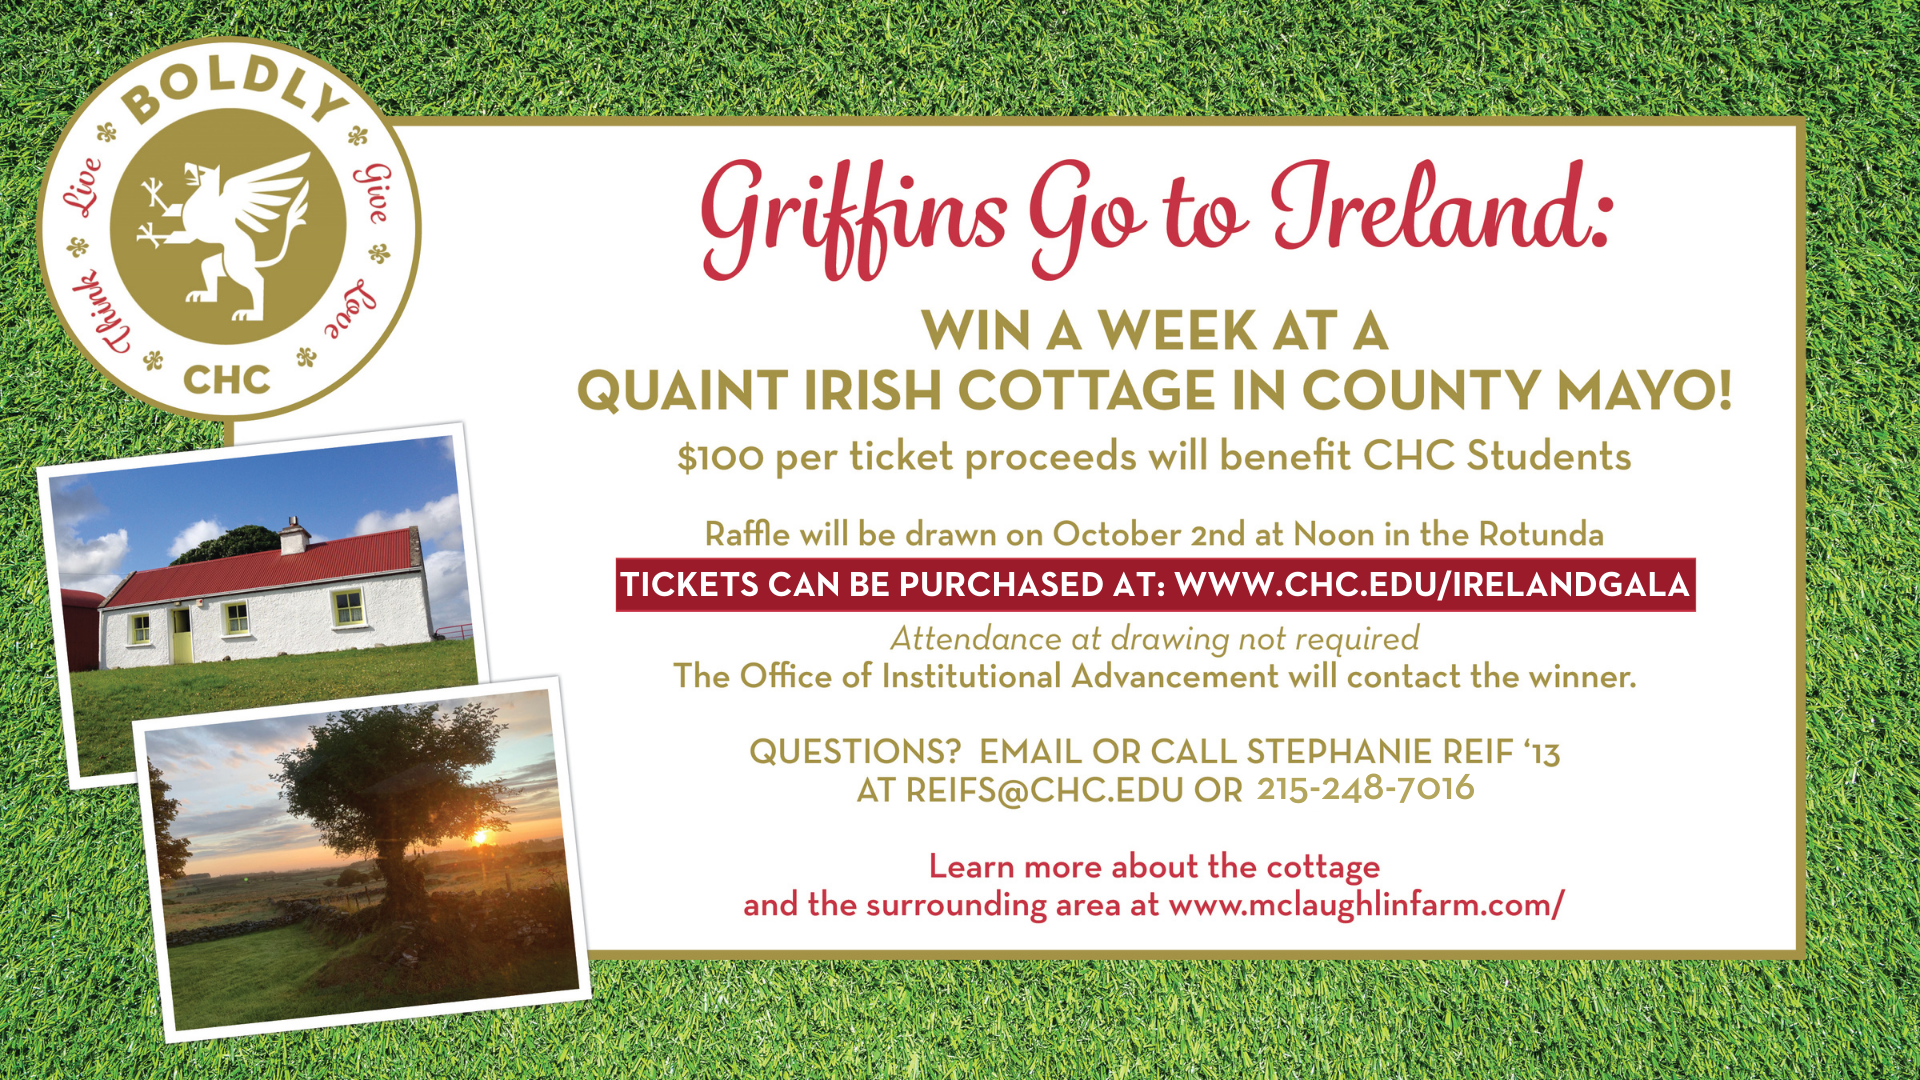 Griffins Go to Ireland - Win a week at a quaint Irish Cottage in County Mayo!